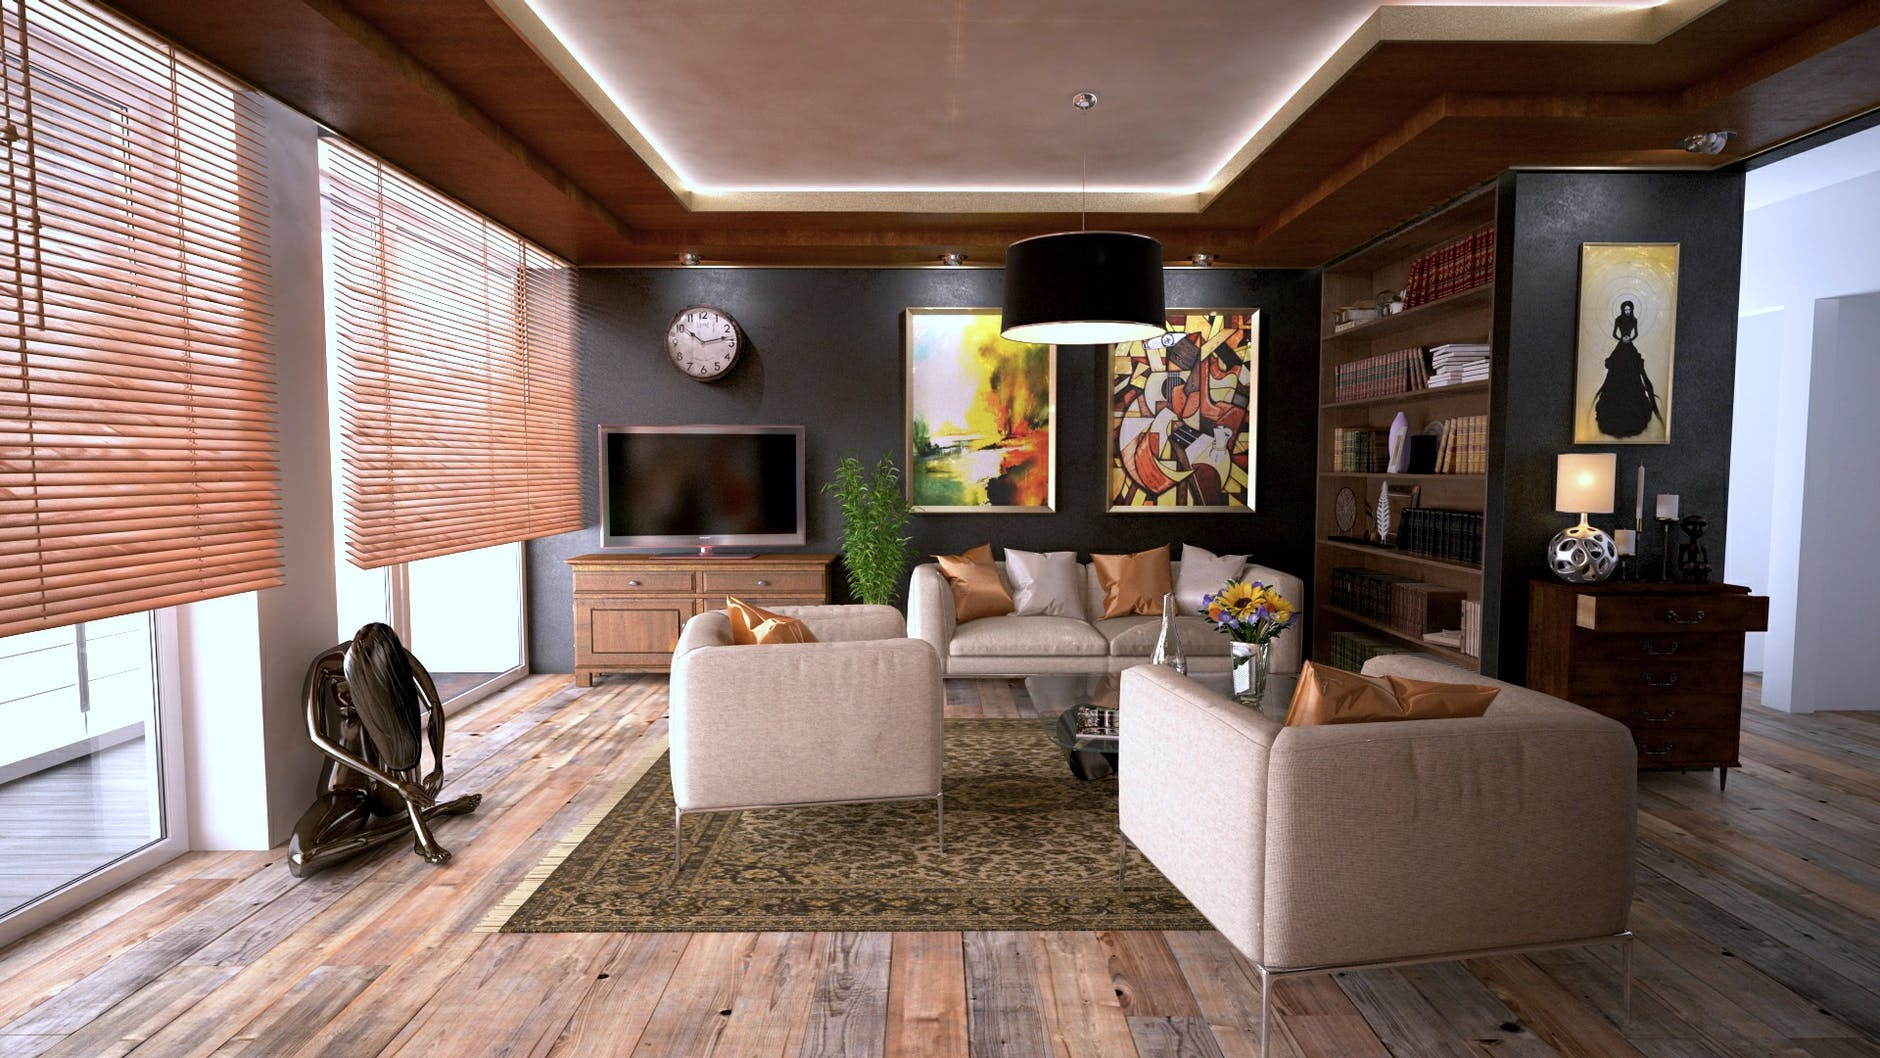 The Benefits to Designer High-End Painting and Textures